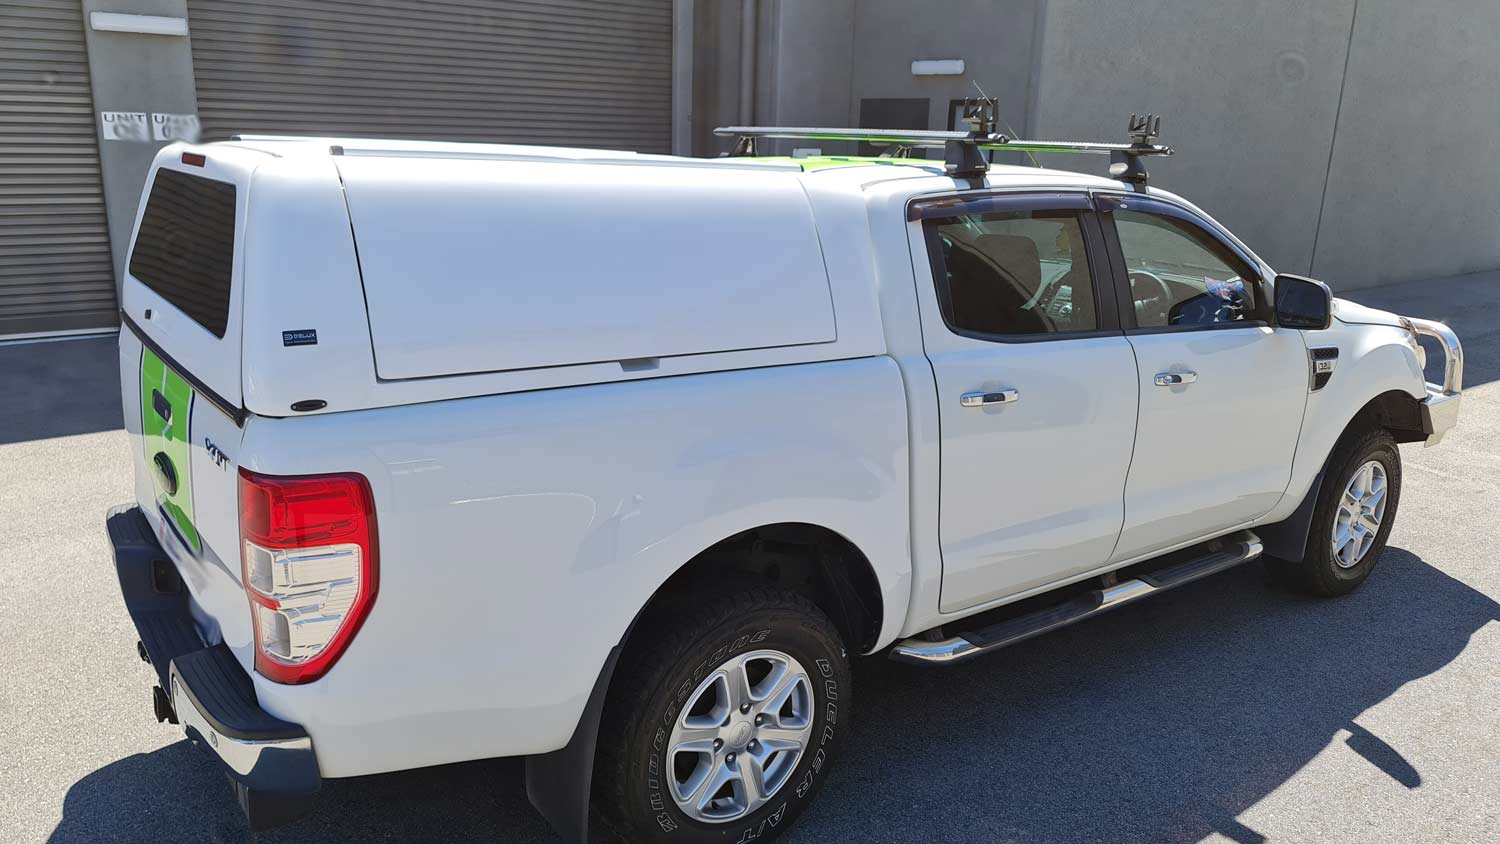 Force Pro Canopy on Ford Ranger 2016 - side view